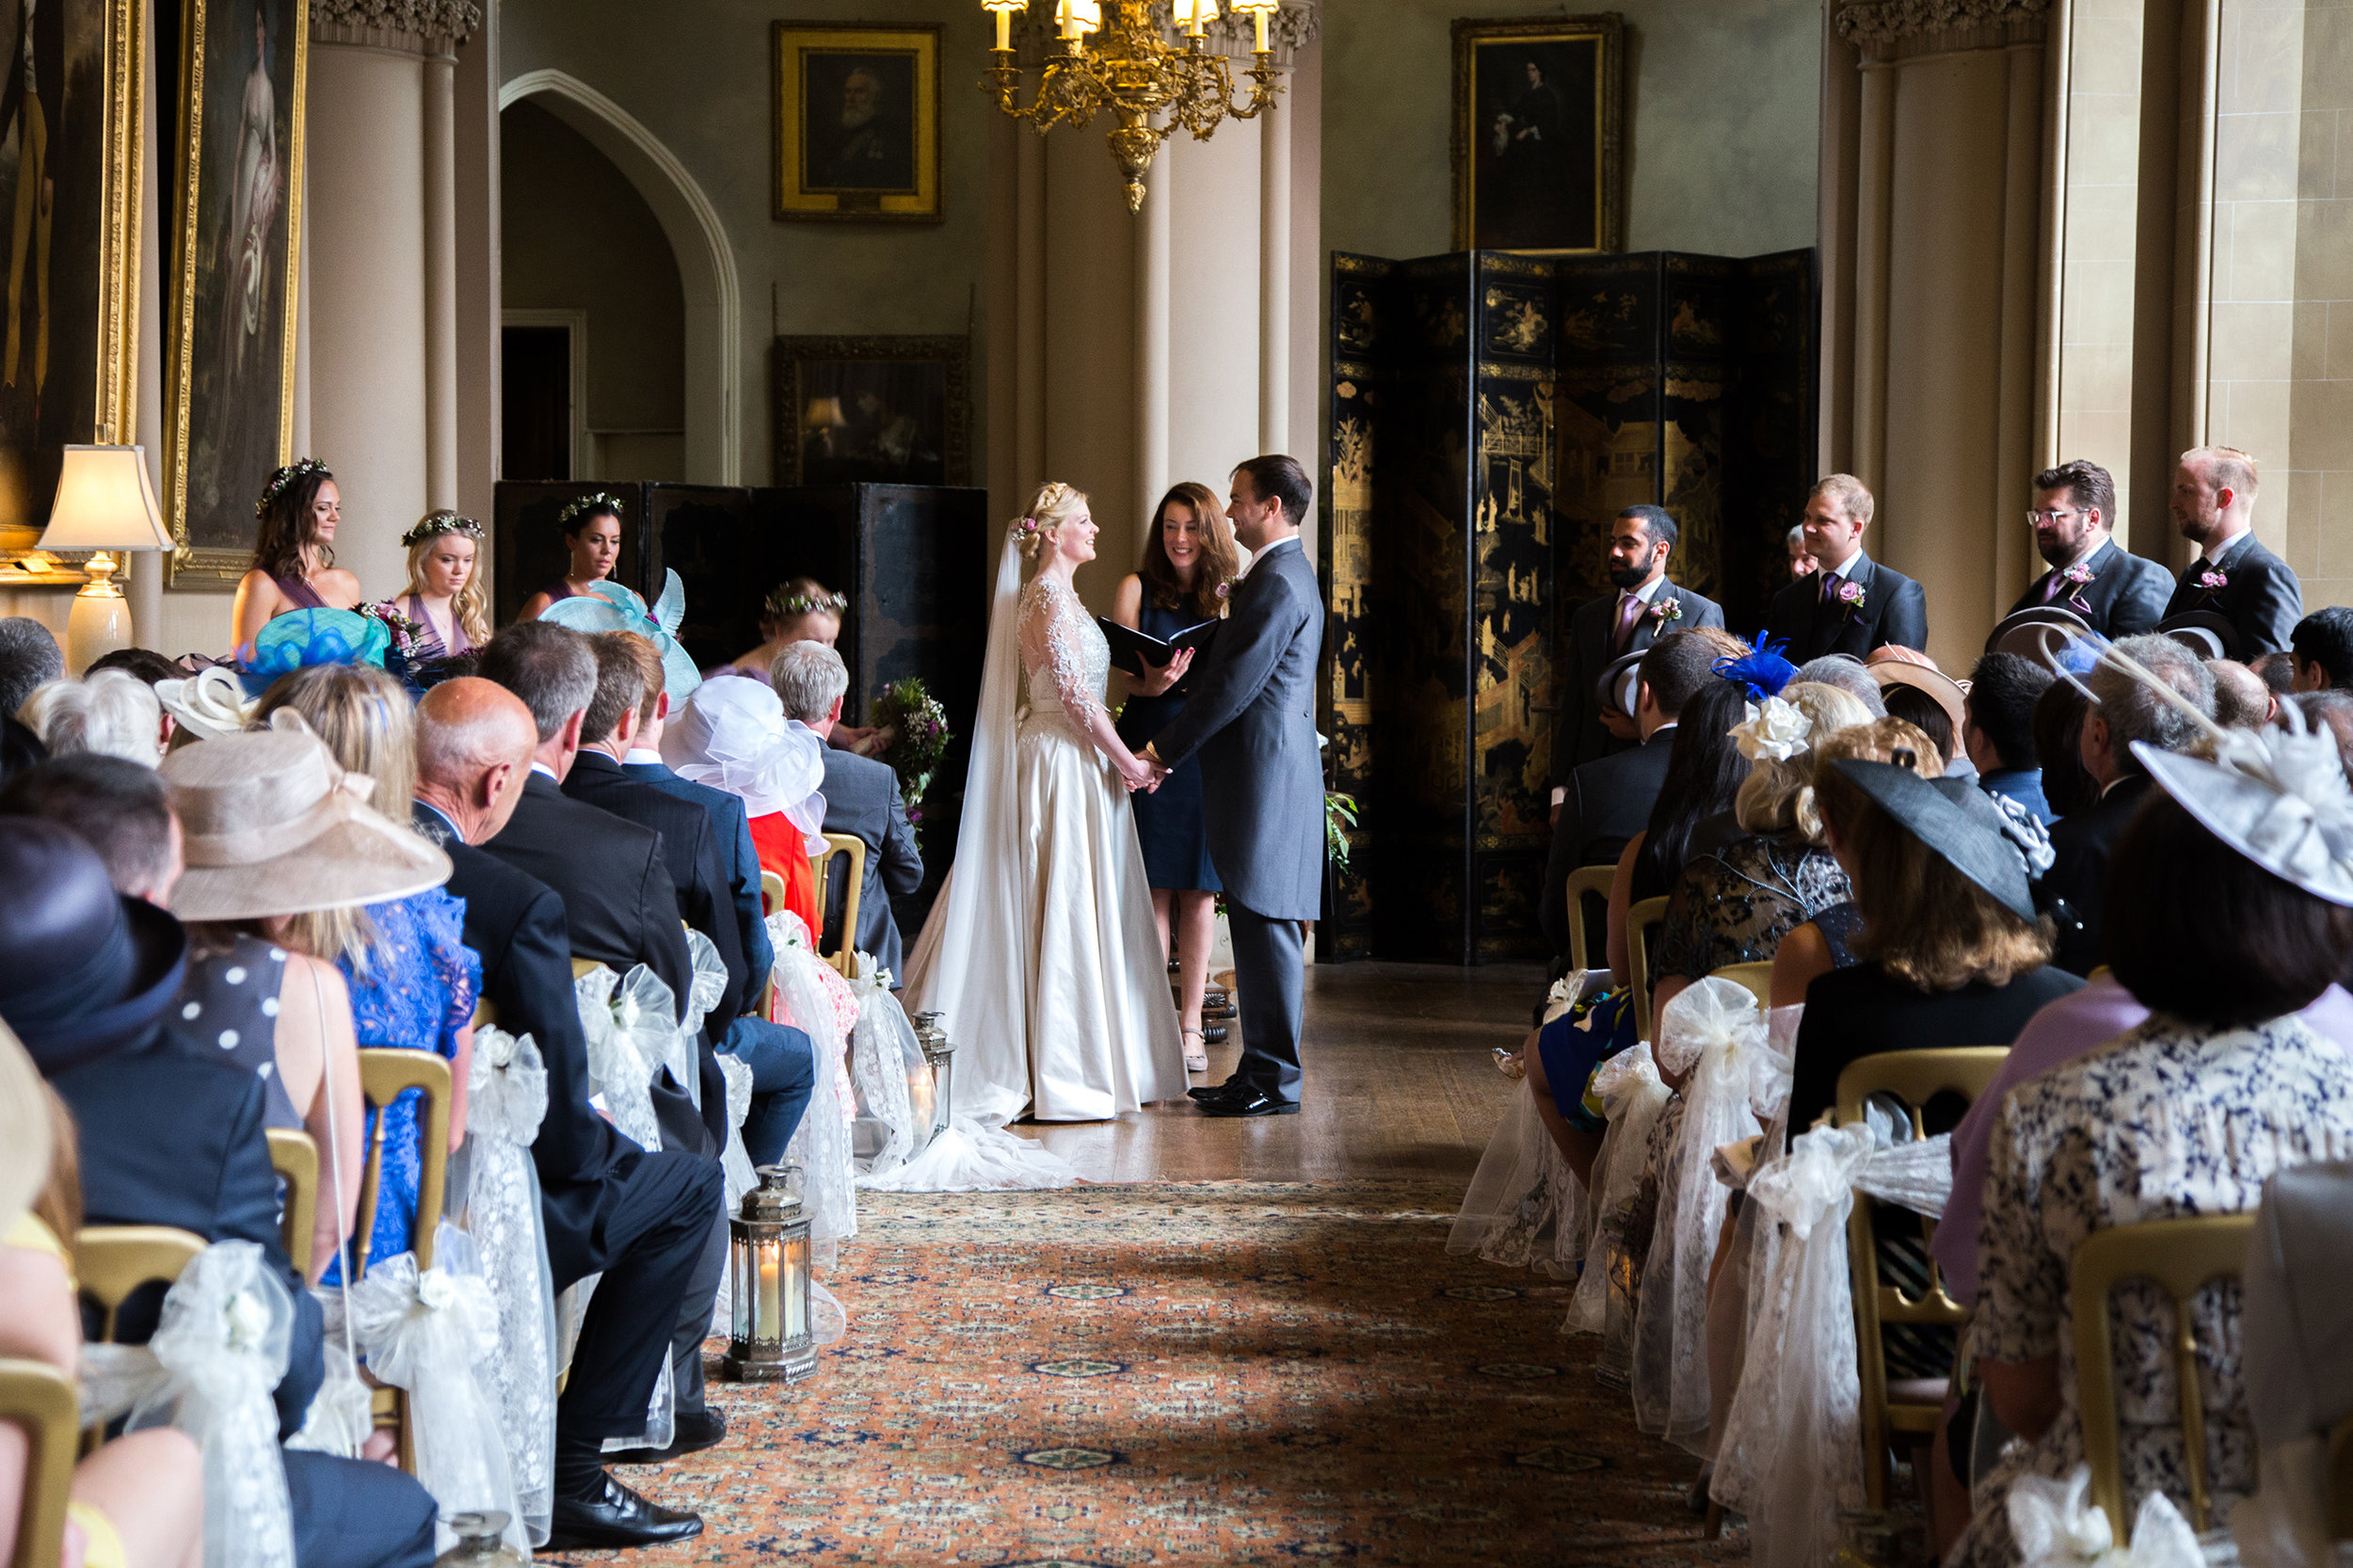 A traditional wedding with an American twist at the beautiful Belvoir Castle